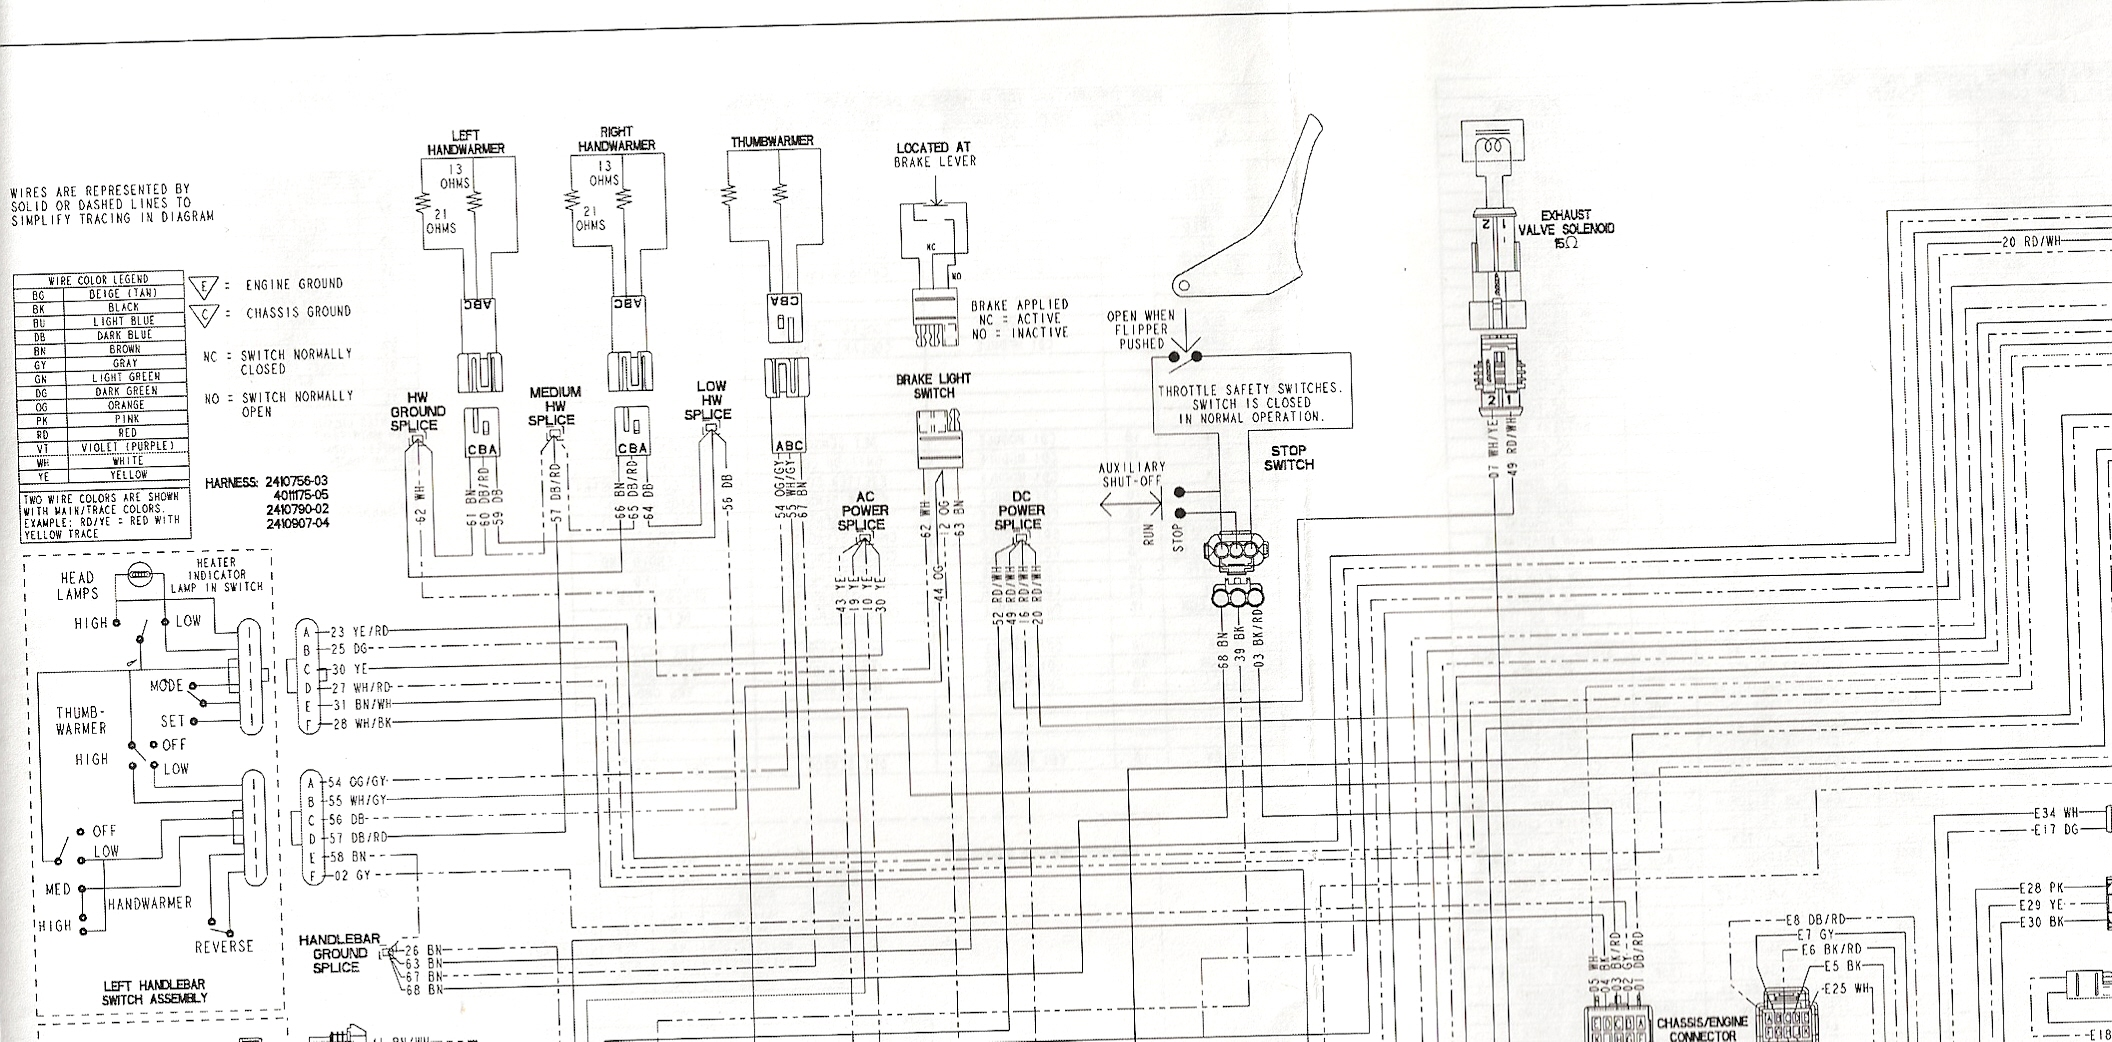 small resolution of wiring diagram for 2002 polaris 325 magnum polaris 325 polaris atv wiring diagram polaris atv wiring diagram